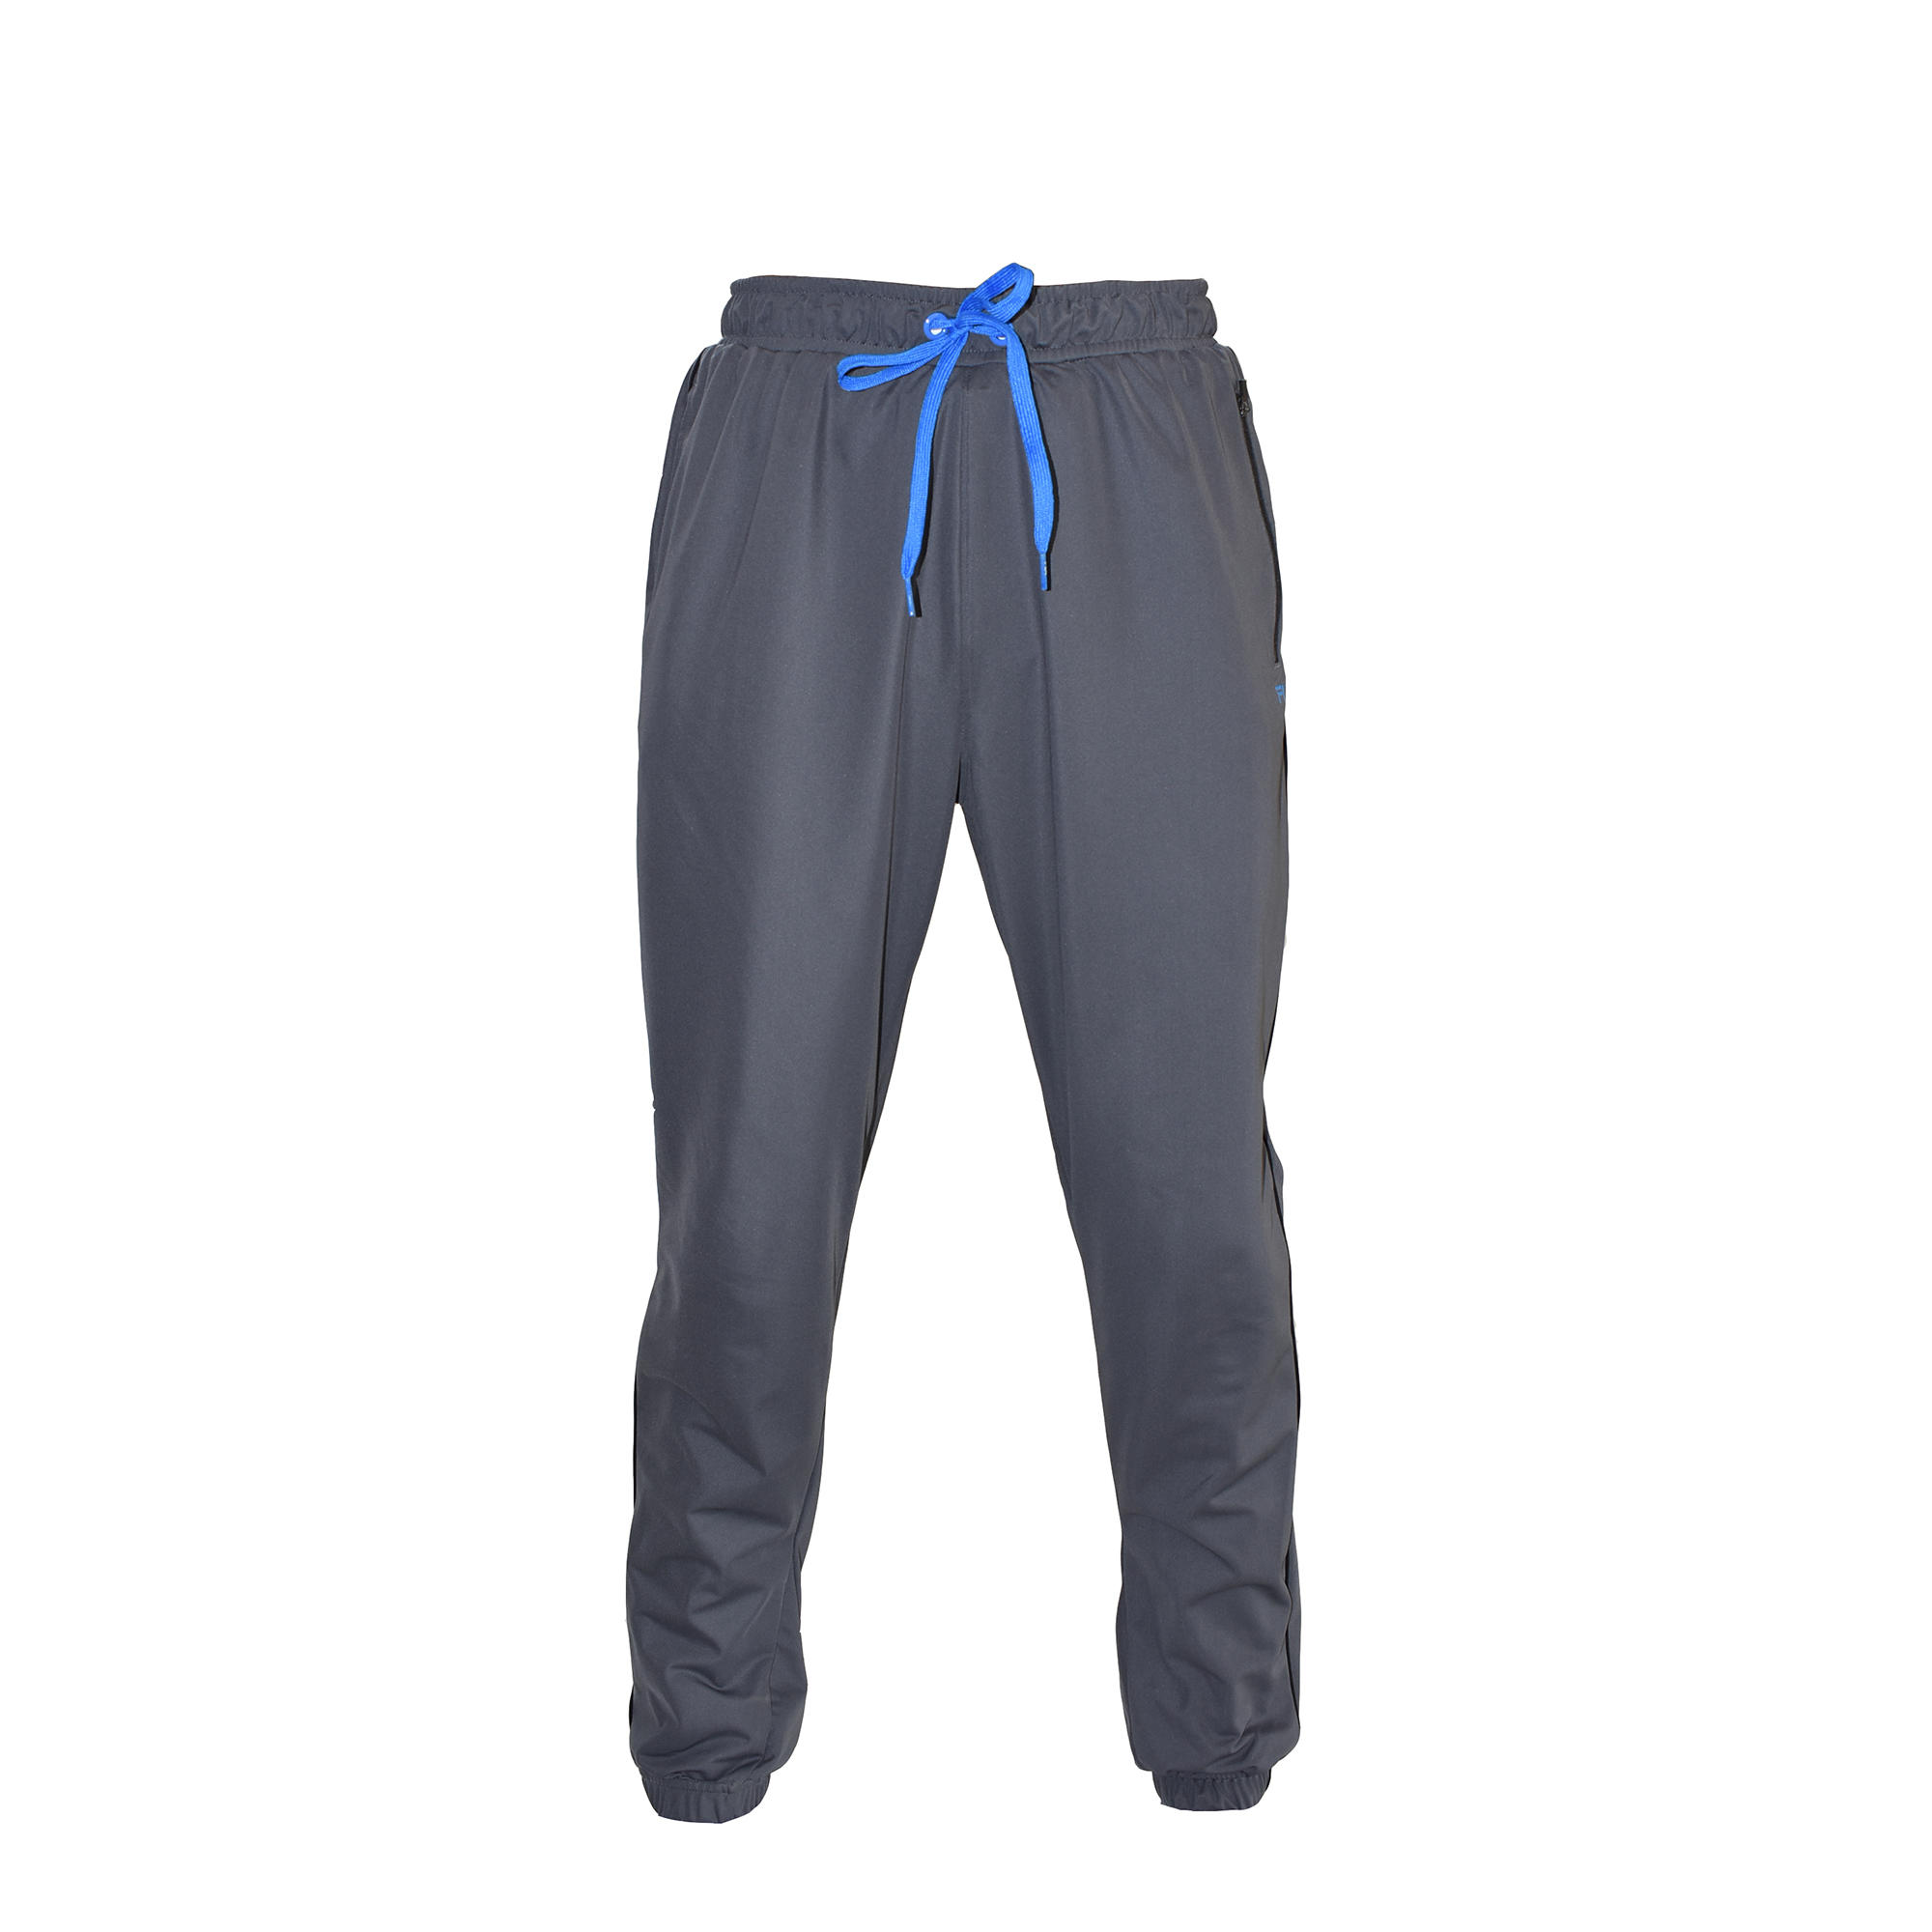 CRICKET TROUSER TAPERED TR 500 - Grey